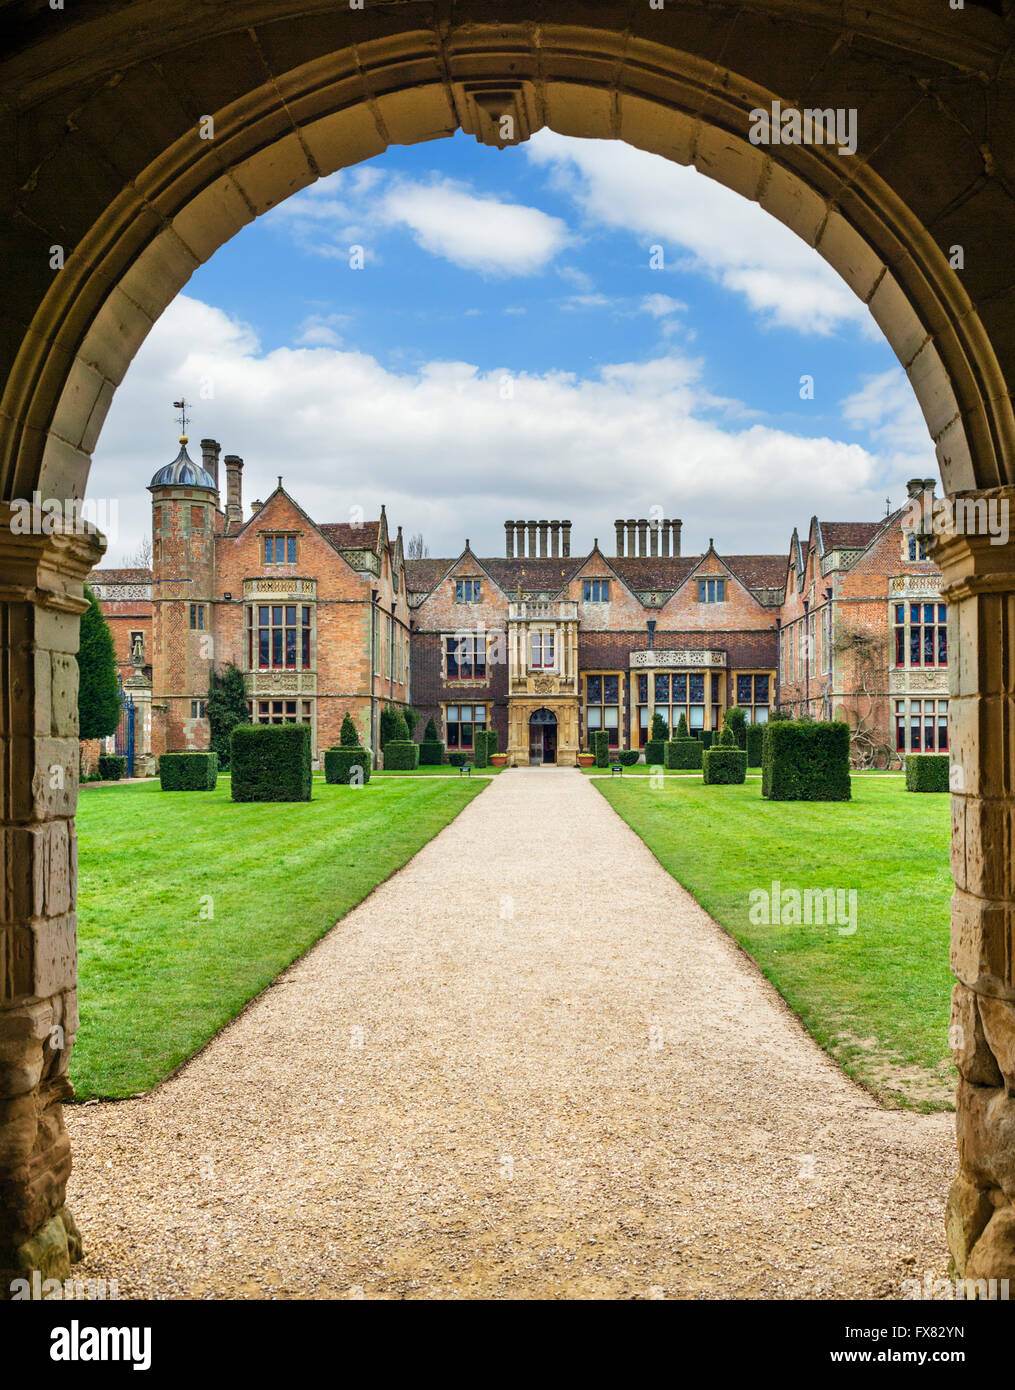 View from the gatehouse of Charlecote Park, a manor house near Stratford-upon-Avon dating from 16thC, Warwickshire, - Stock Image